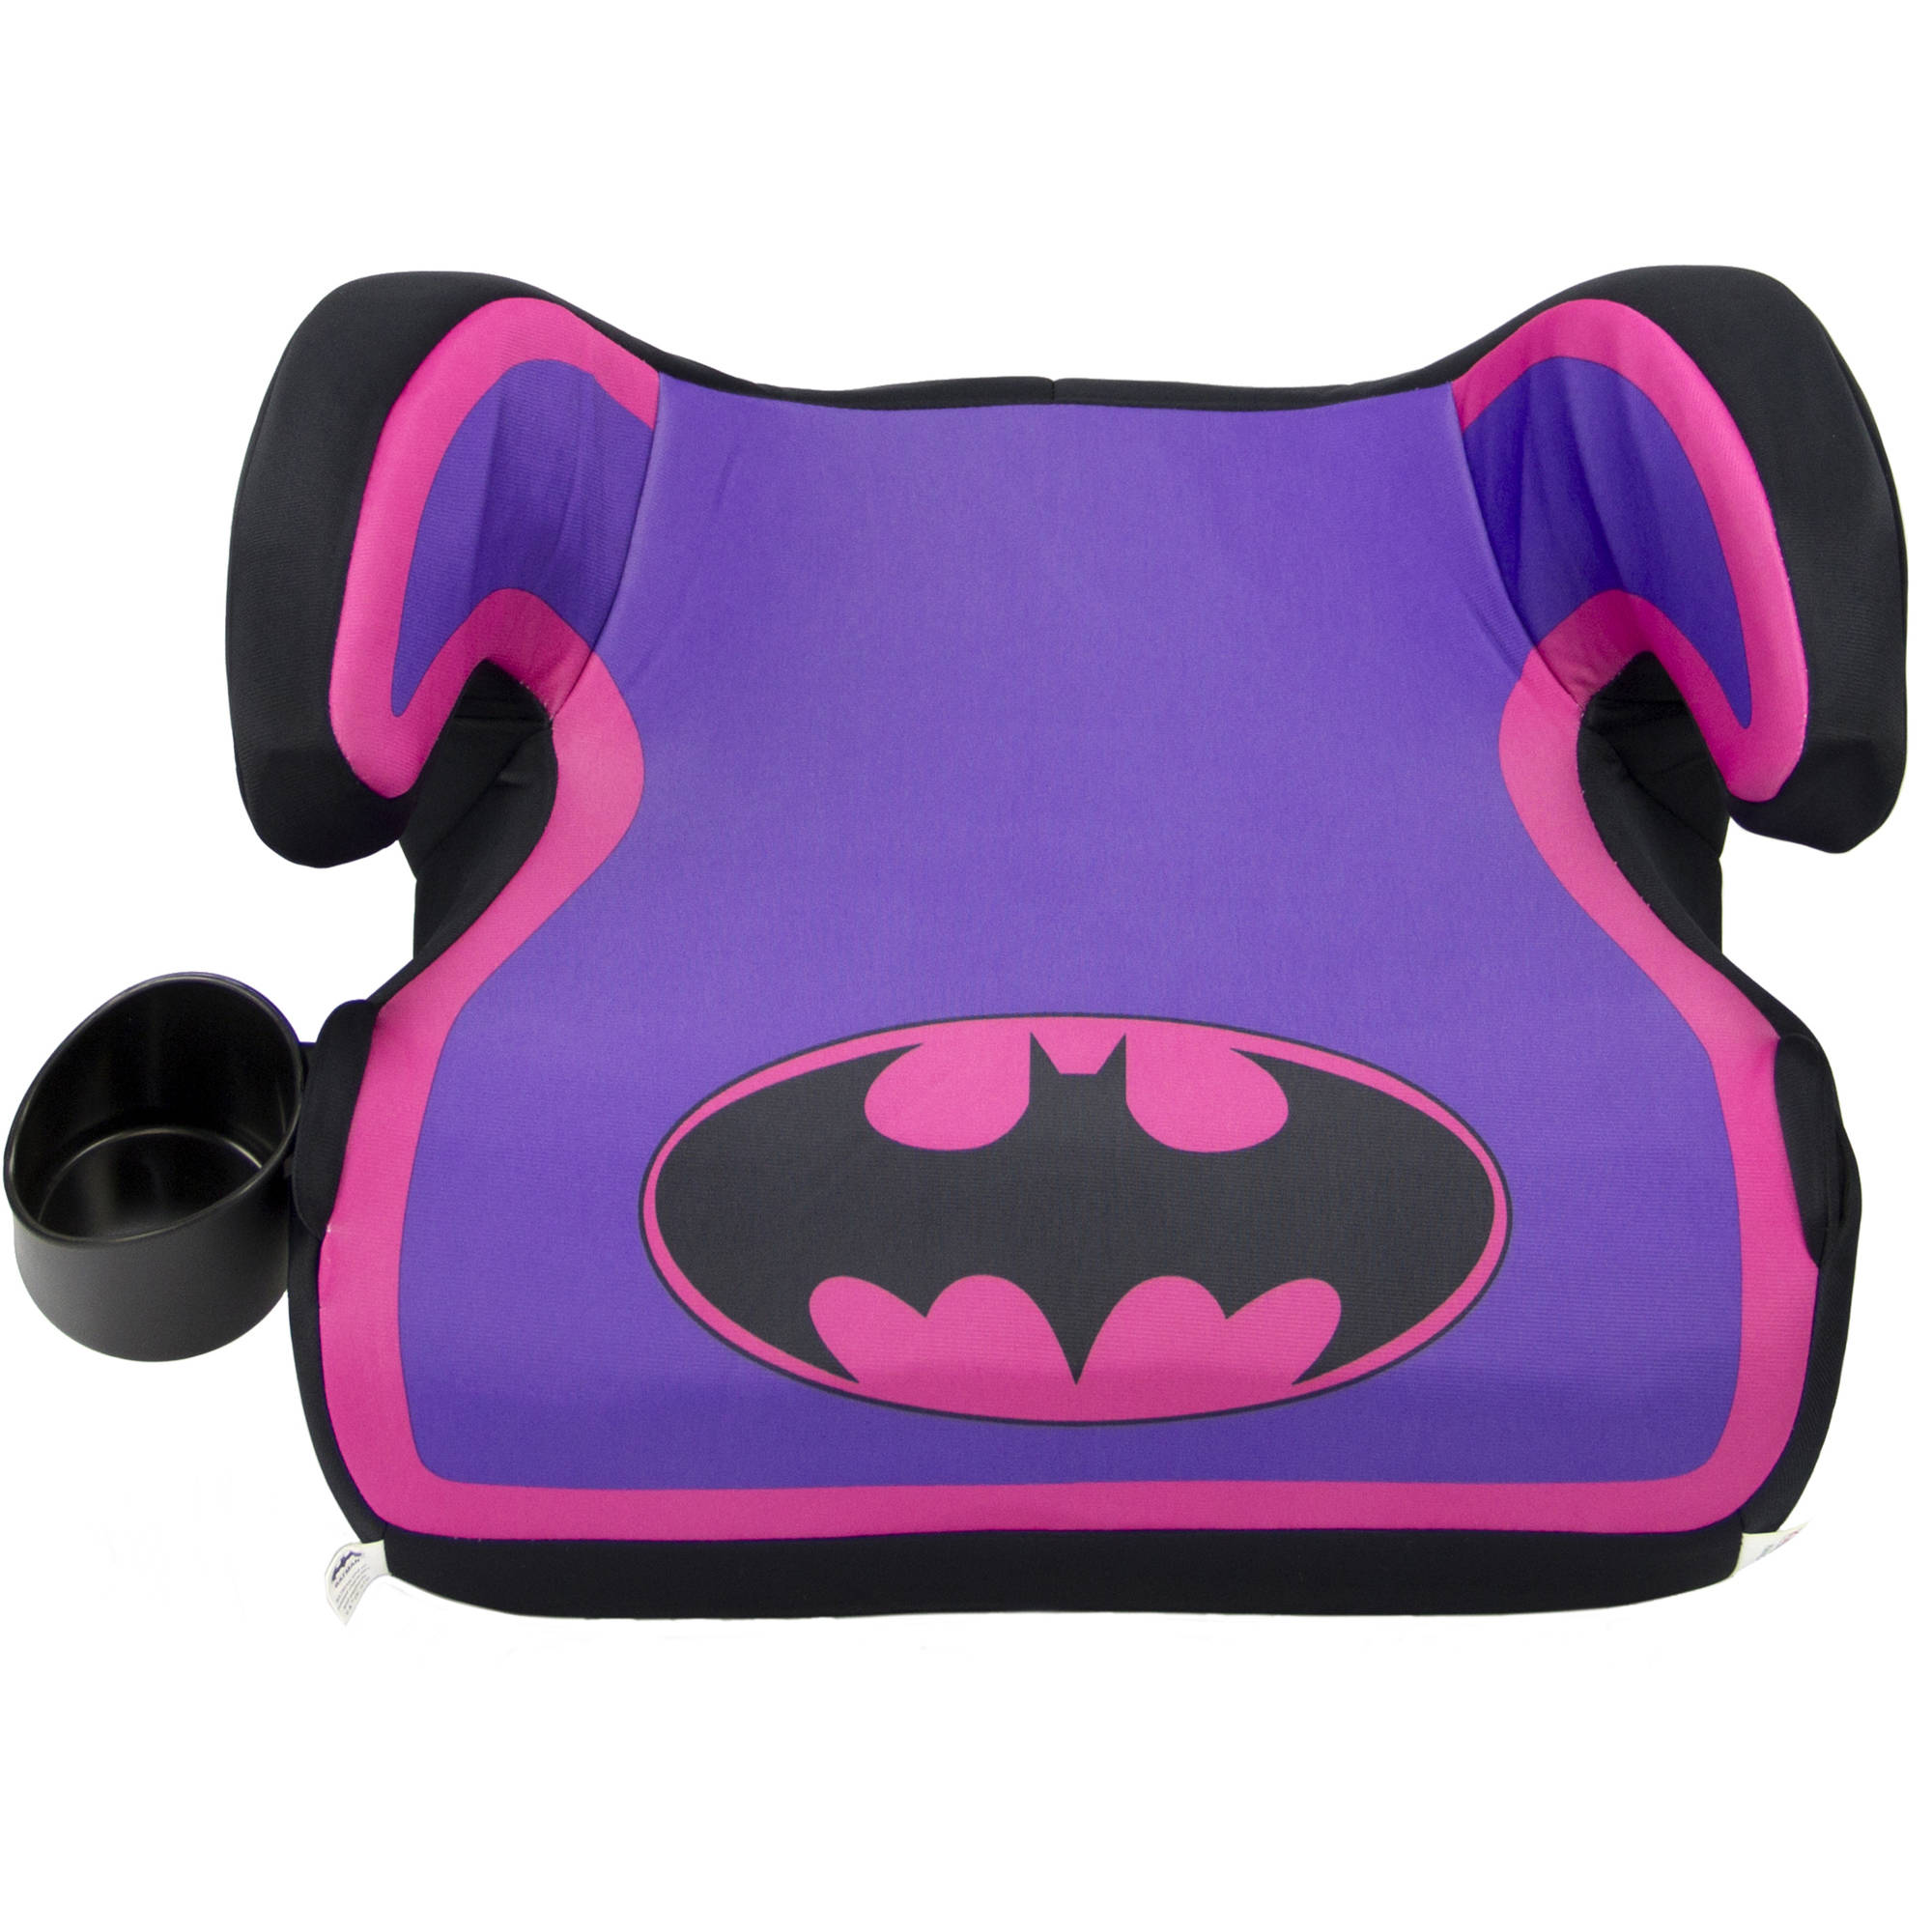 KidsEmbrace Fun-Ride Backless Booster Car Seat, Batgirl